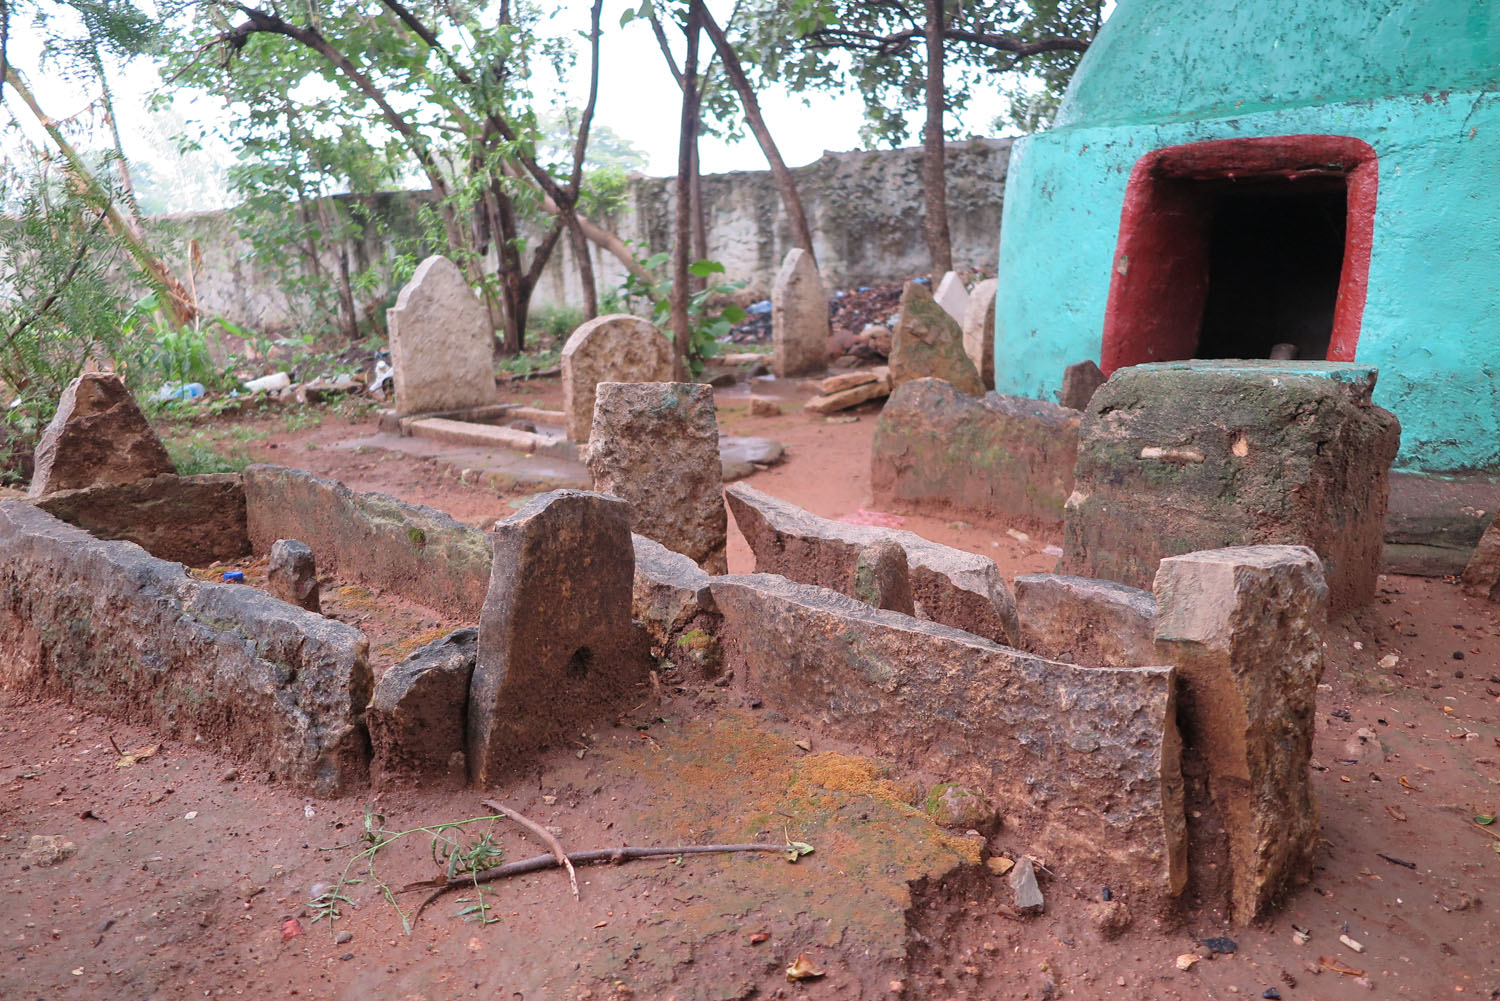 Ethiopia-Harar-Abadir-Shrine